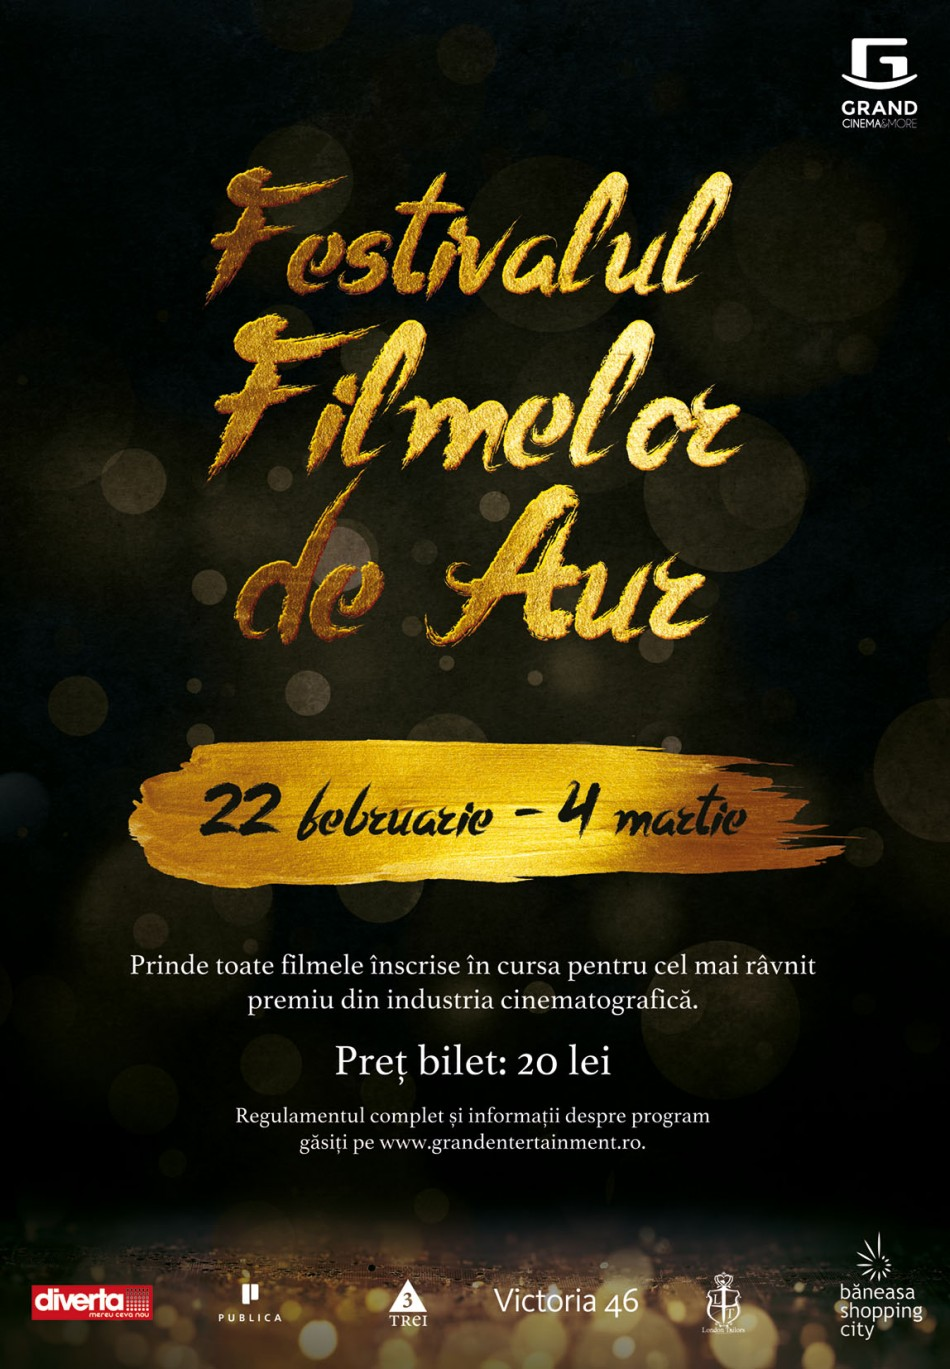 Festivalul-Filmelor-de-Aur_Grand-Cinema-More-950x1369.jpg